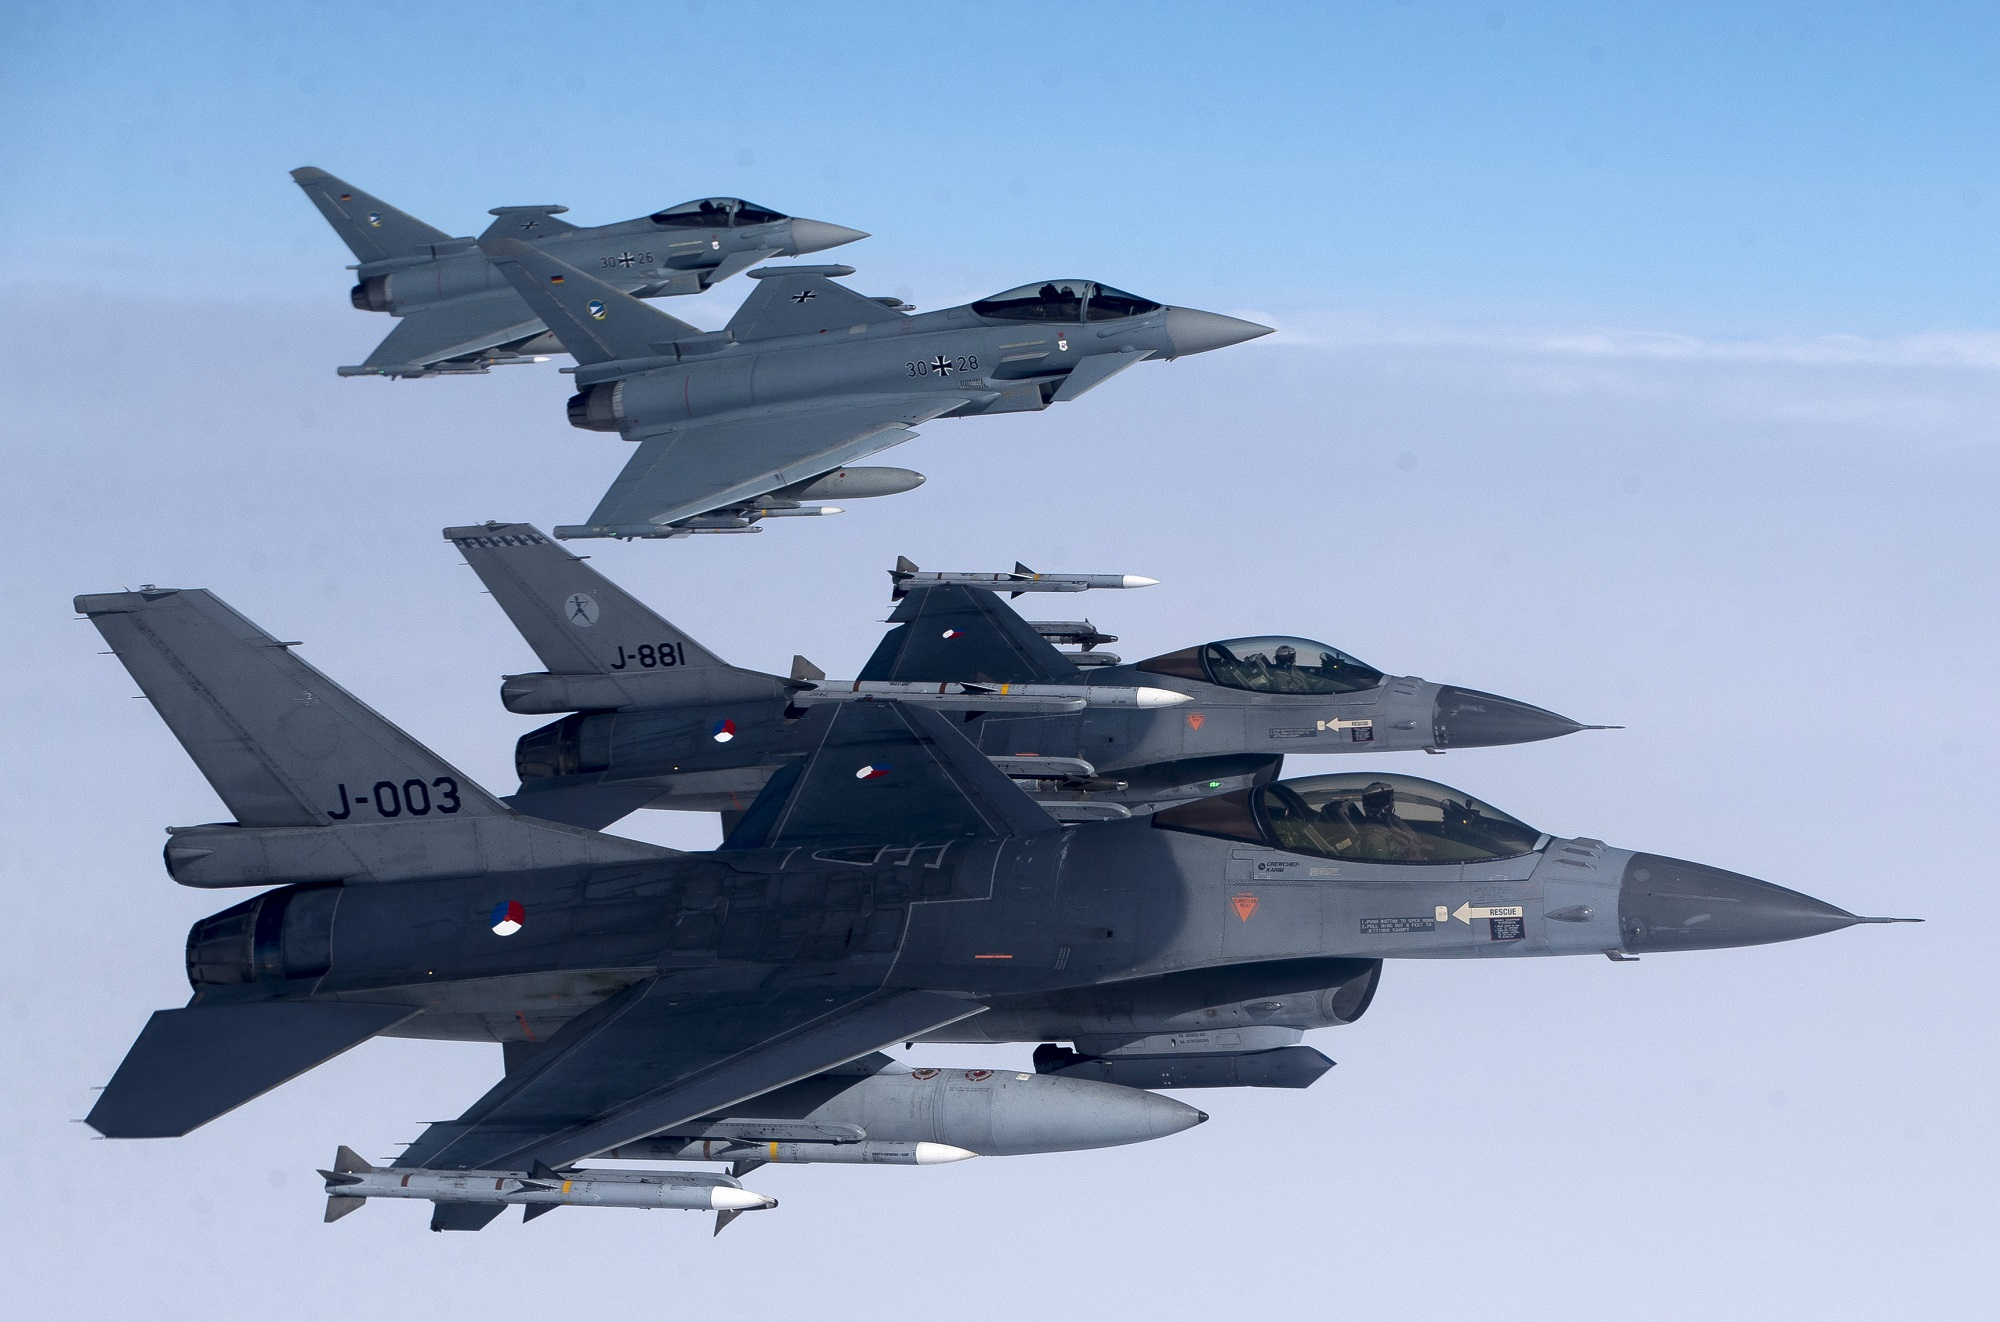 Bulgaria backpedals on Saab Gripen purchase, considers F-16 and Eurofighter